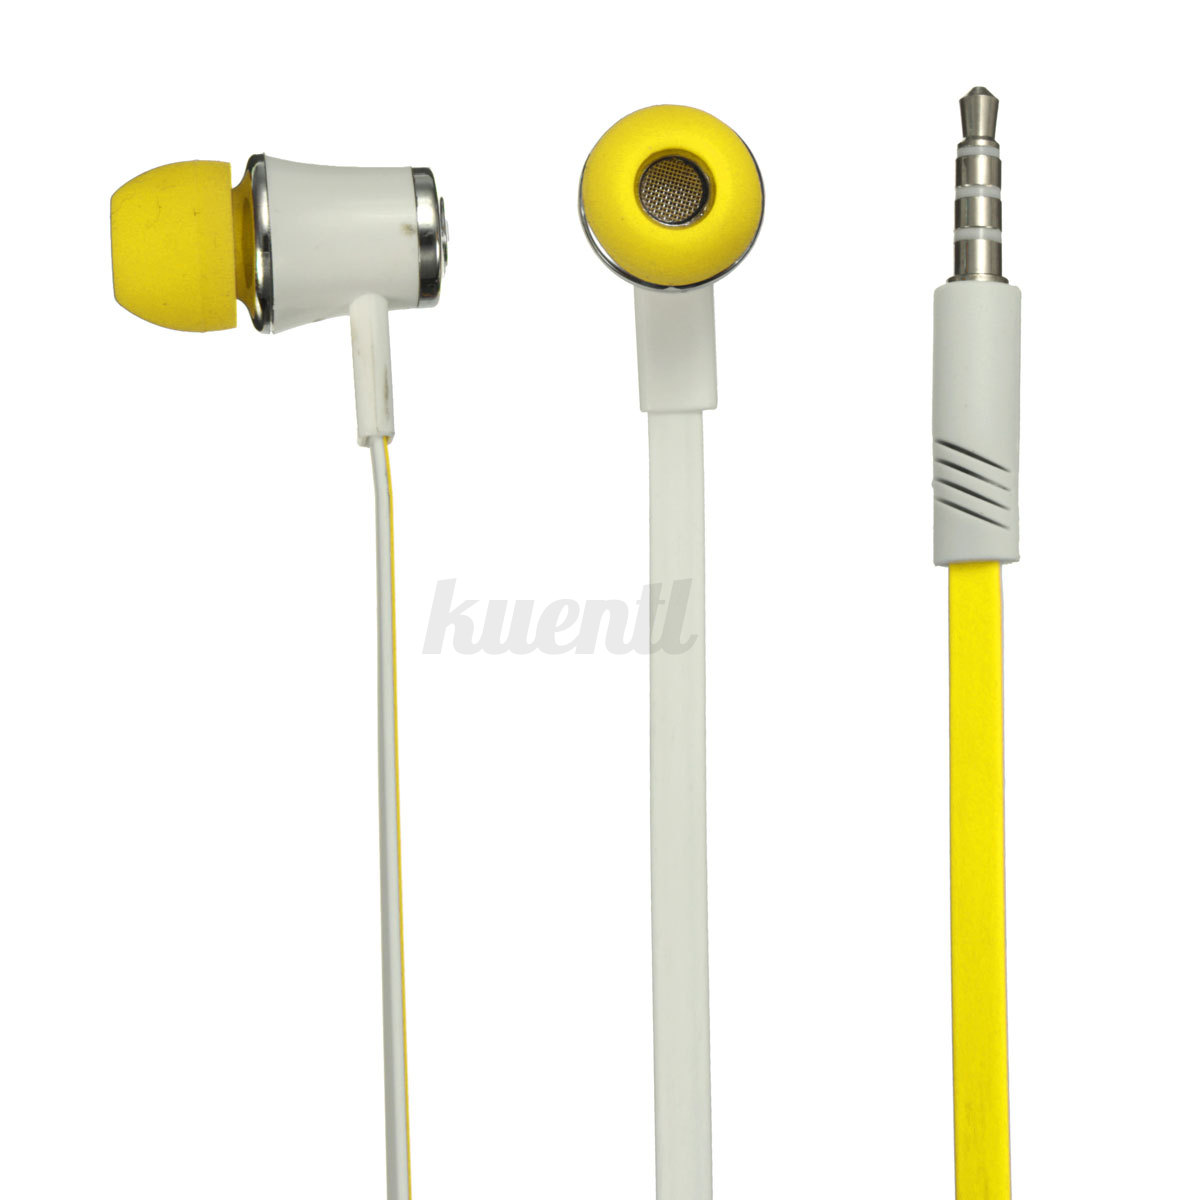 Iphone earbuds yellow - retractable iphone earbuds lightning